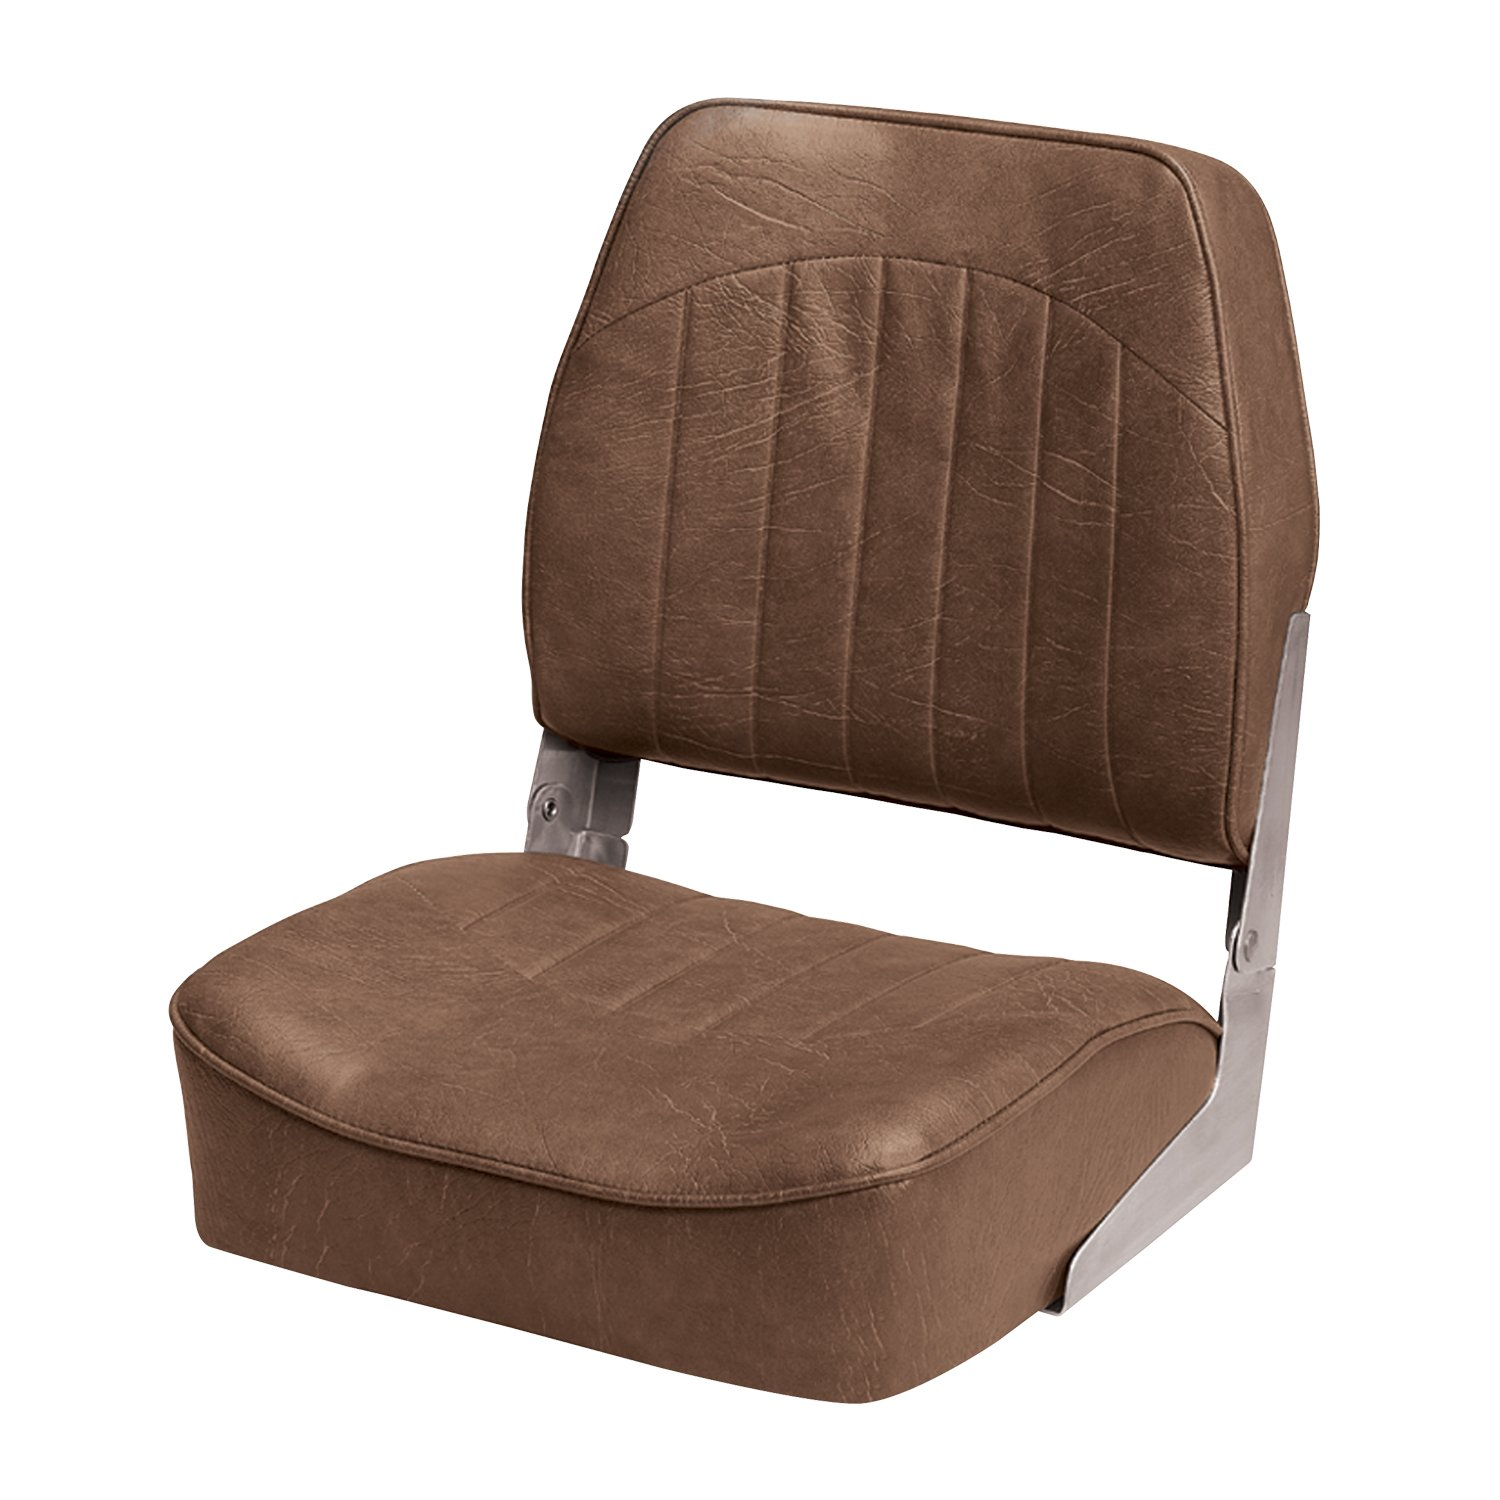 Wise 8WD734PLS-716 Low Back Boat Seat, Bark Brown by Wise (Image #1)